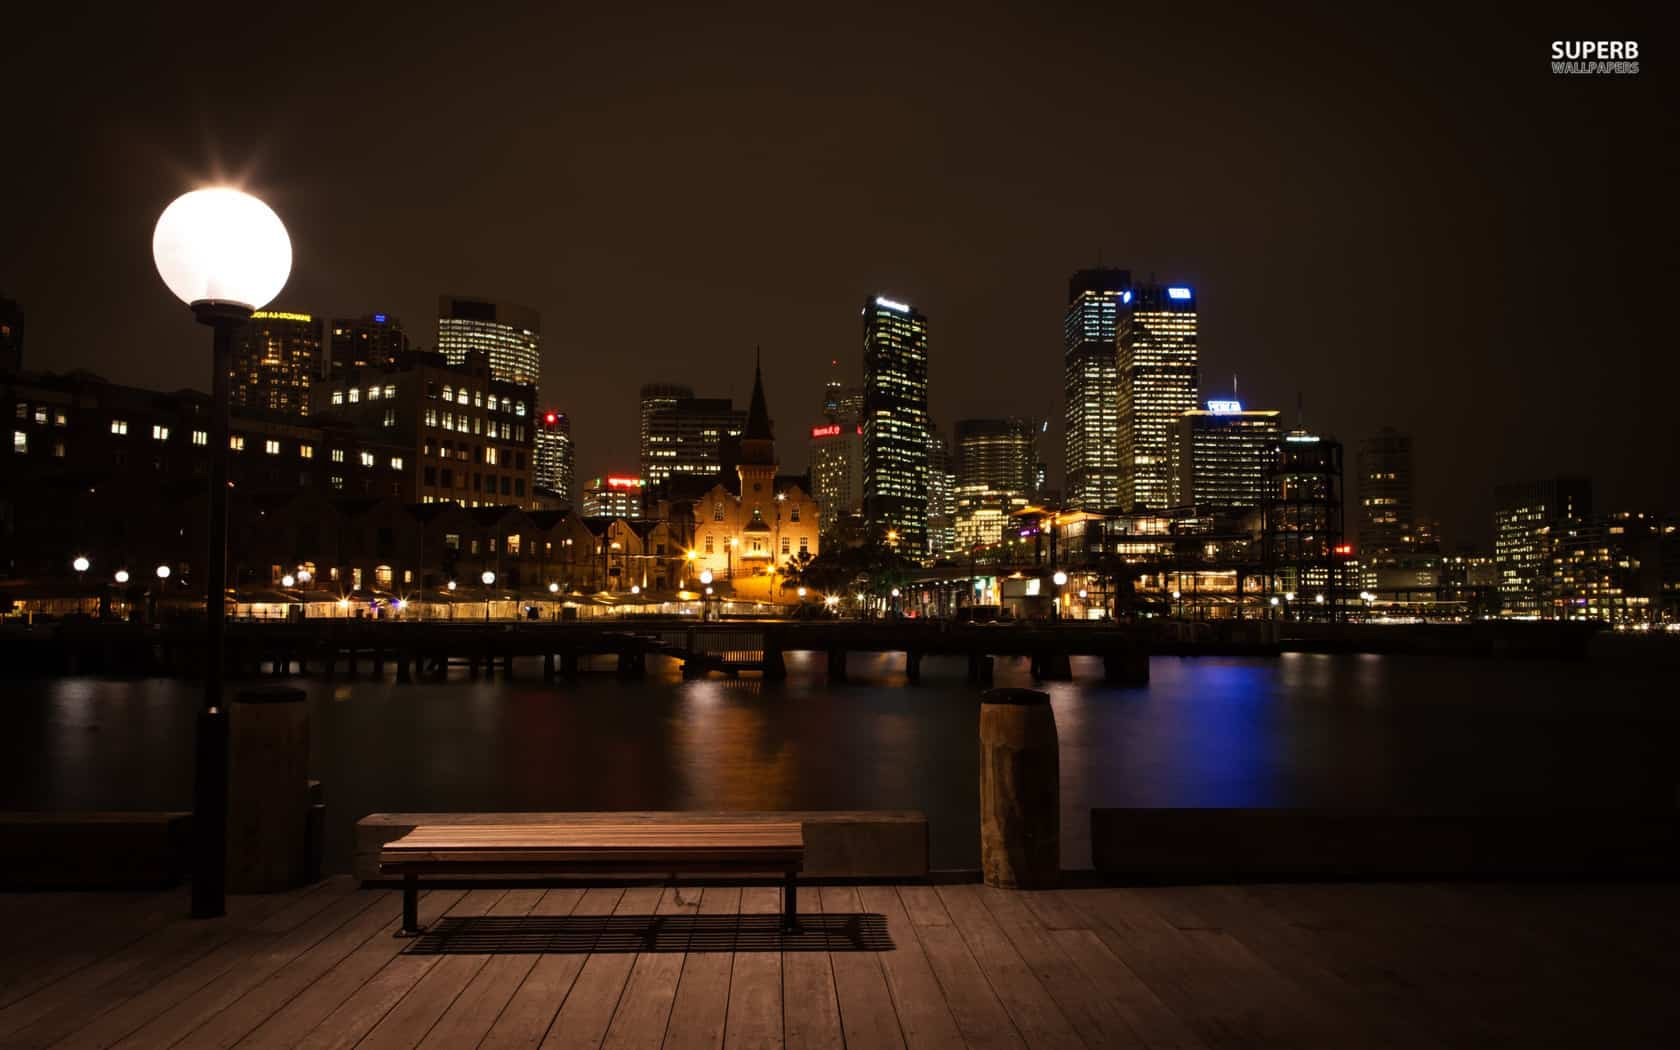 sydney-at-night-17326-1680x1050